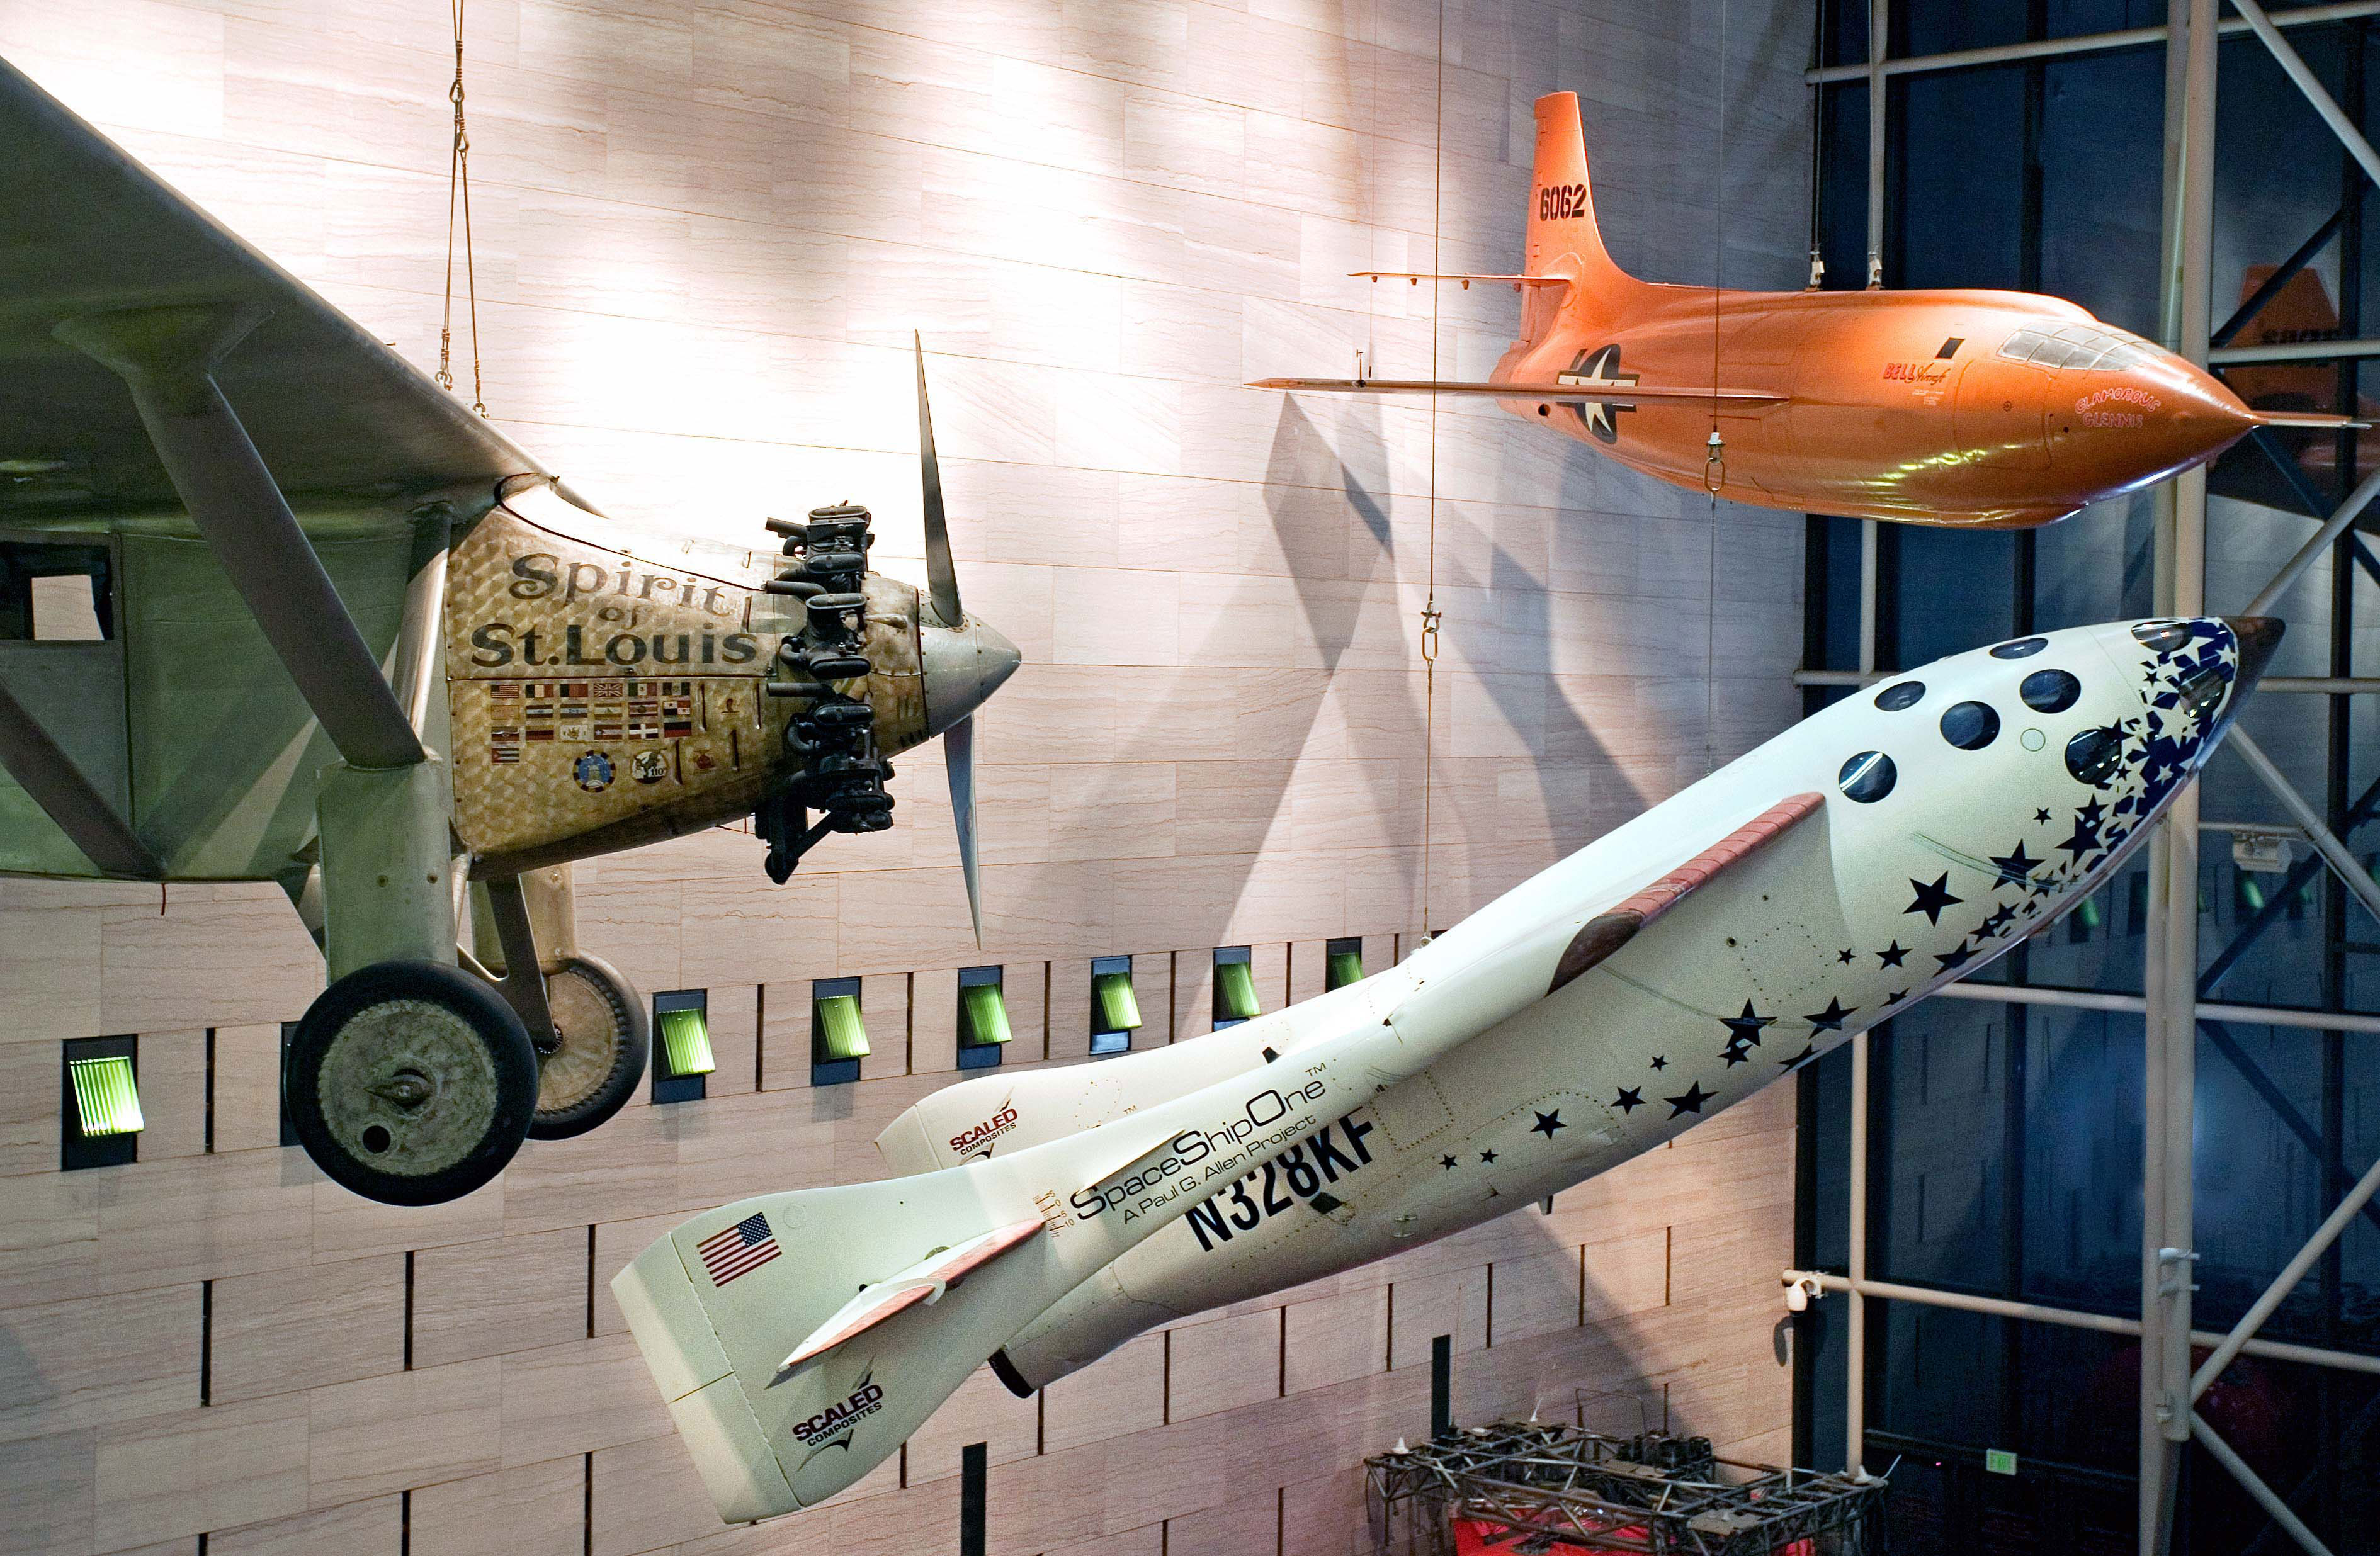 Aviation Treasures: Spirit of St. Louis, SpaceShipOne and the Bell X-1. Credit: Eric Long/NASM Smithsonian Institution